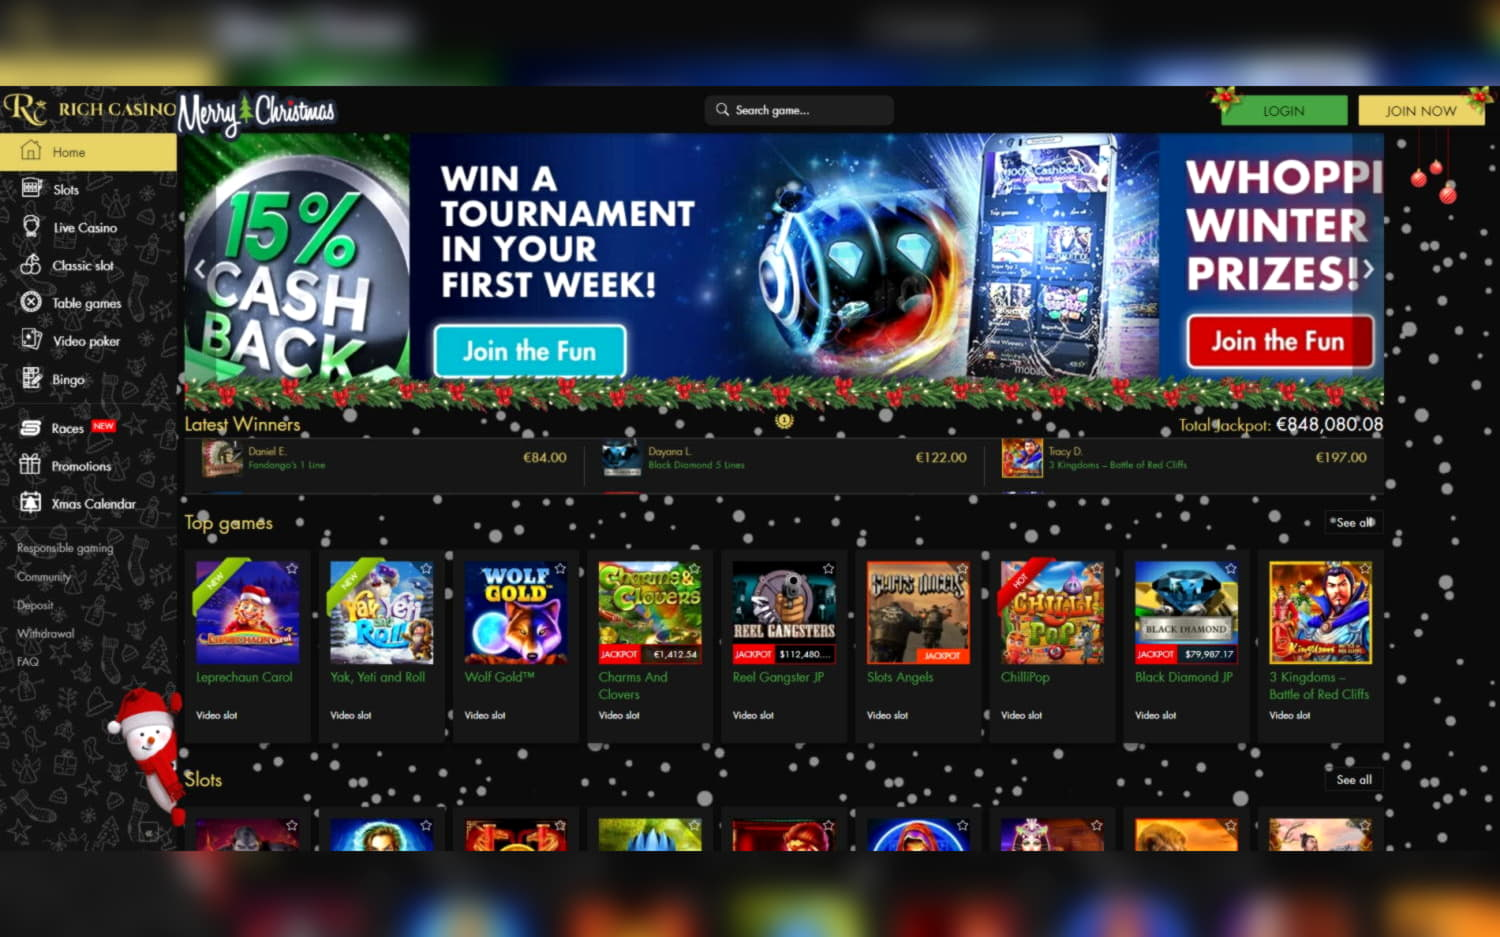 $155 free chip at Cheeky Riches Casino